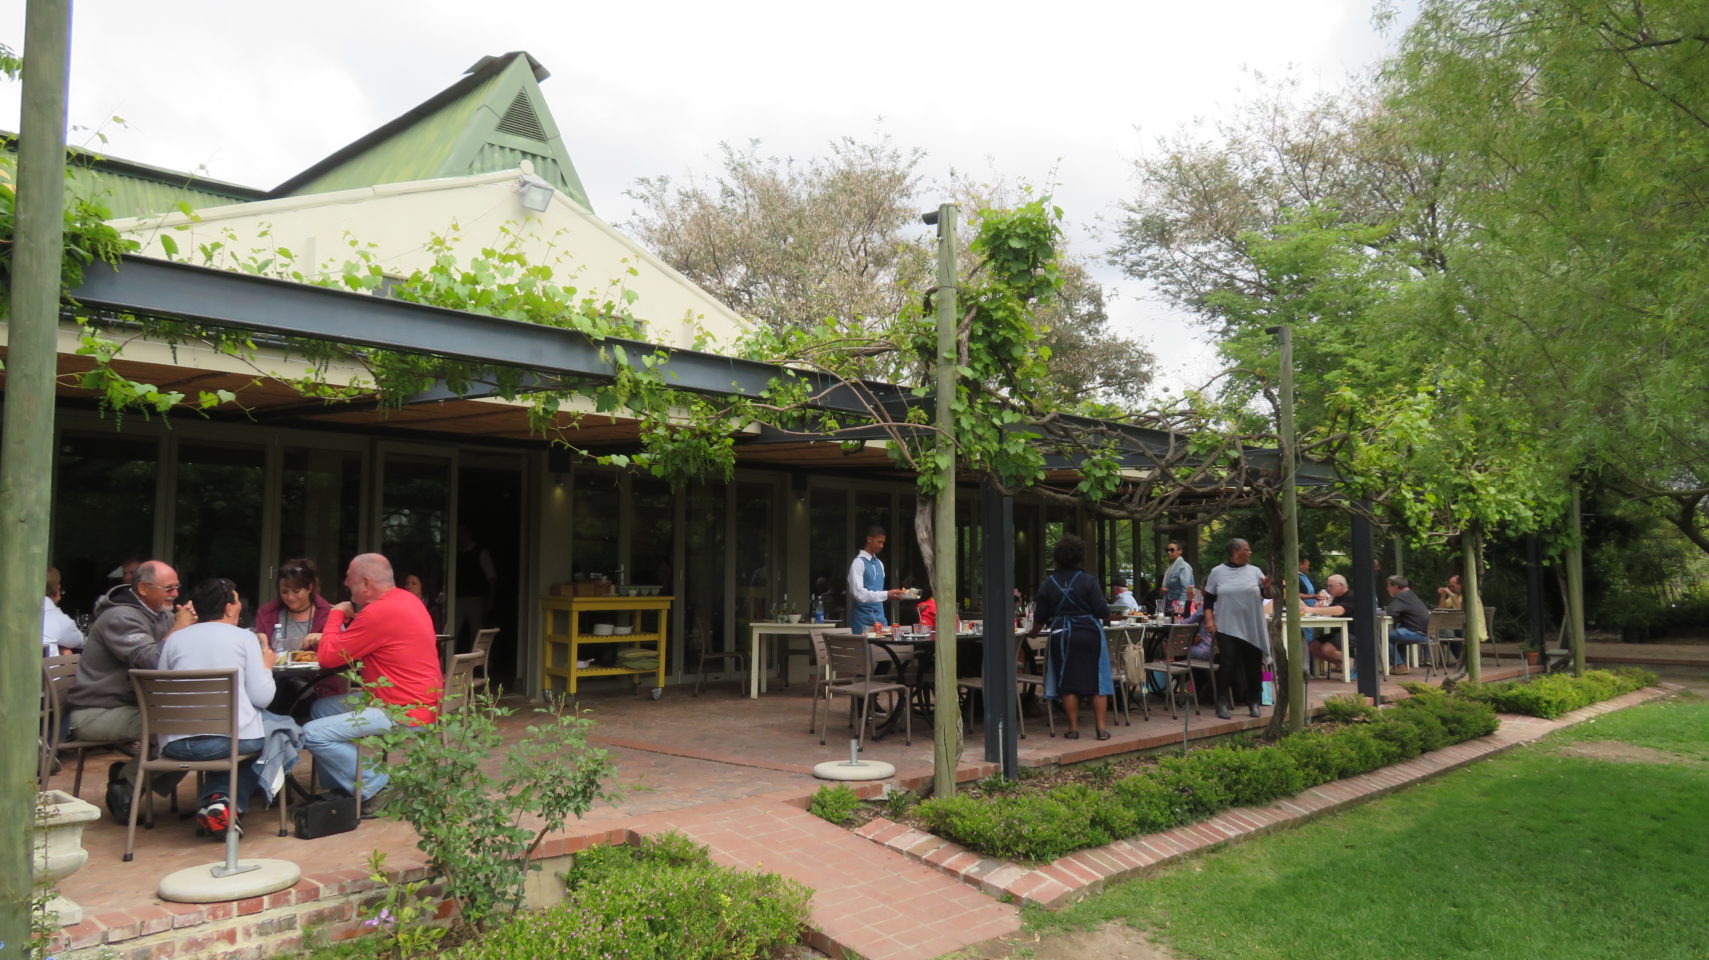 Joostenberg Bistro in Stellenbosch, South Africa